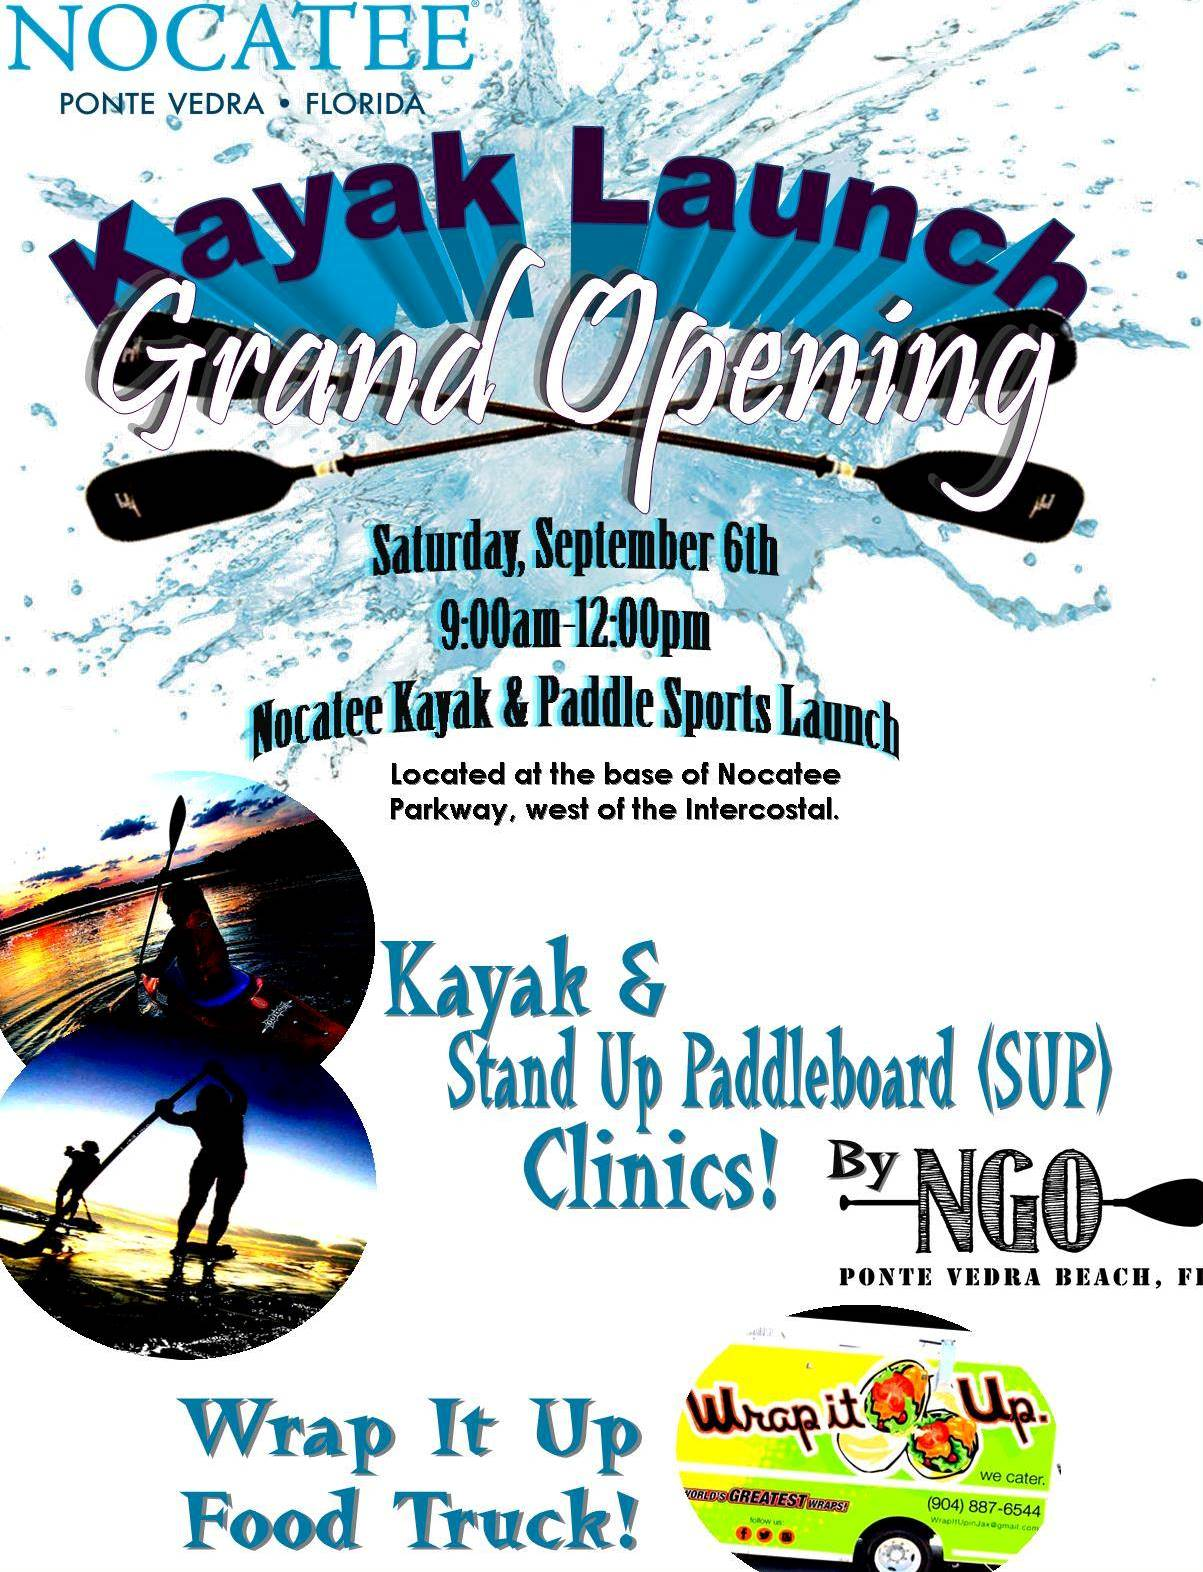 Nocatee Kayak and Paddle Sports Launch Grand Opening Event